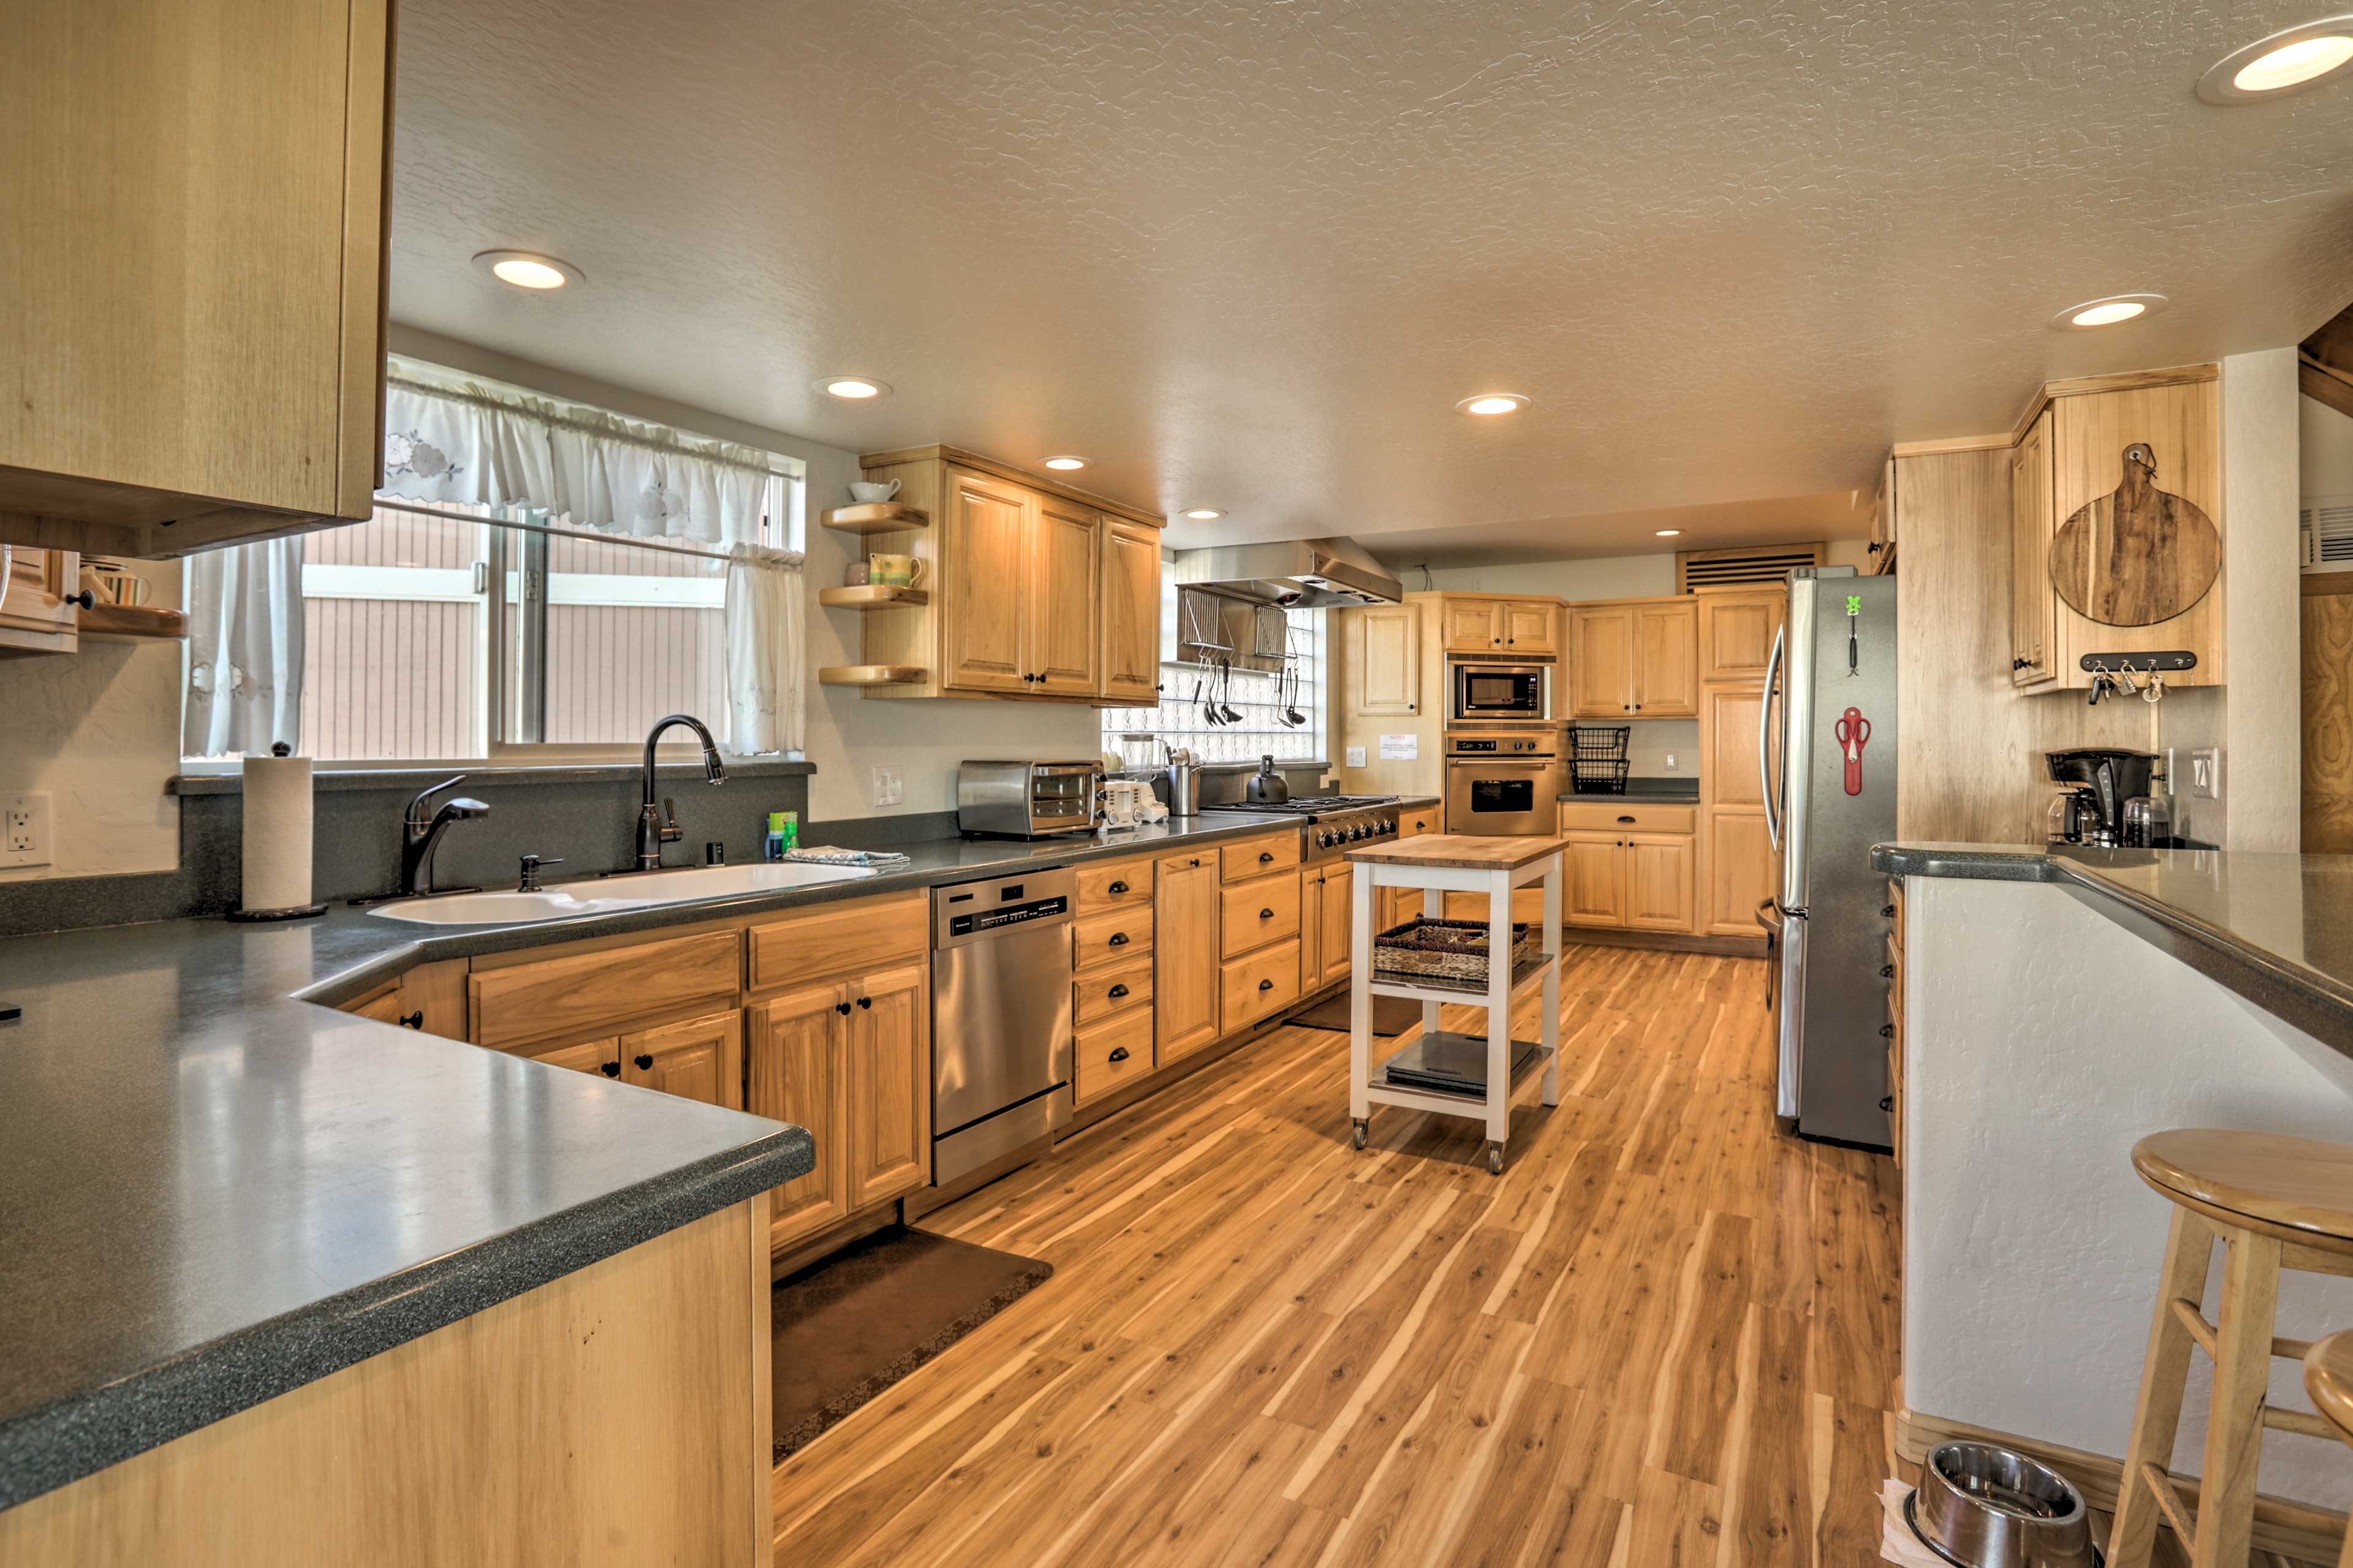 The spacious kitchen makes it easy to prepare meals.